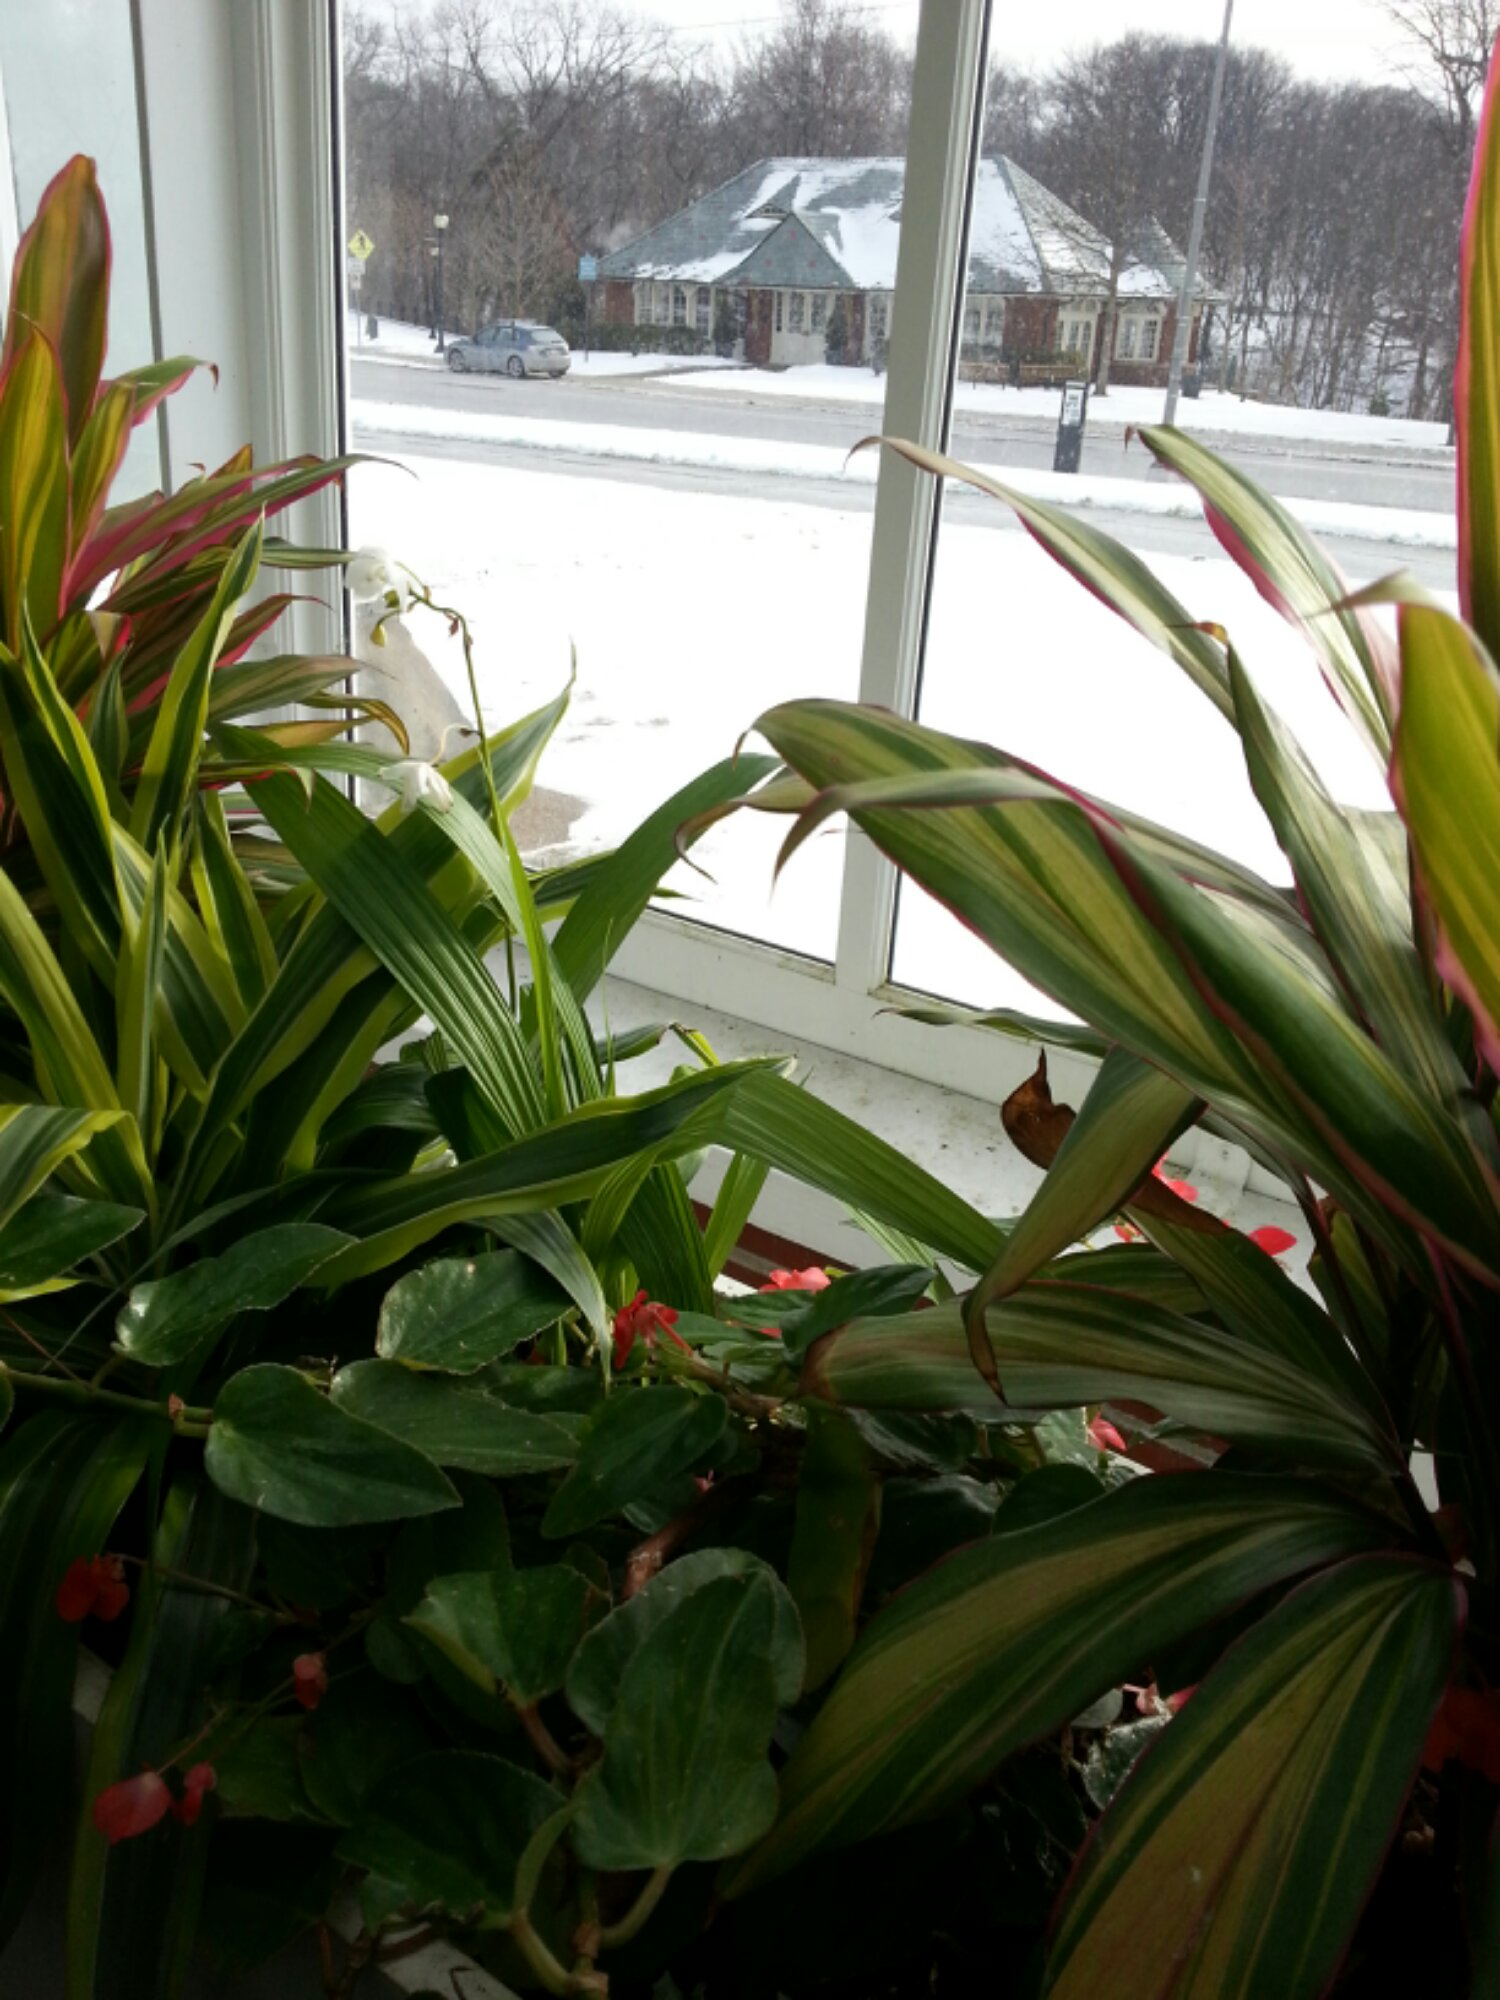 Observing Winter from inside Phipps